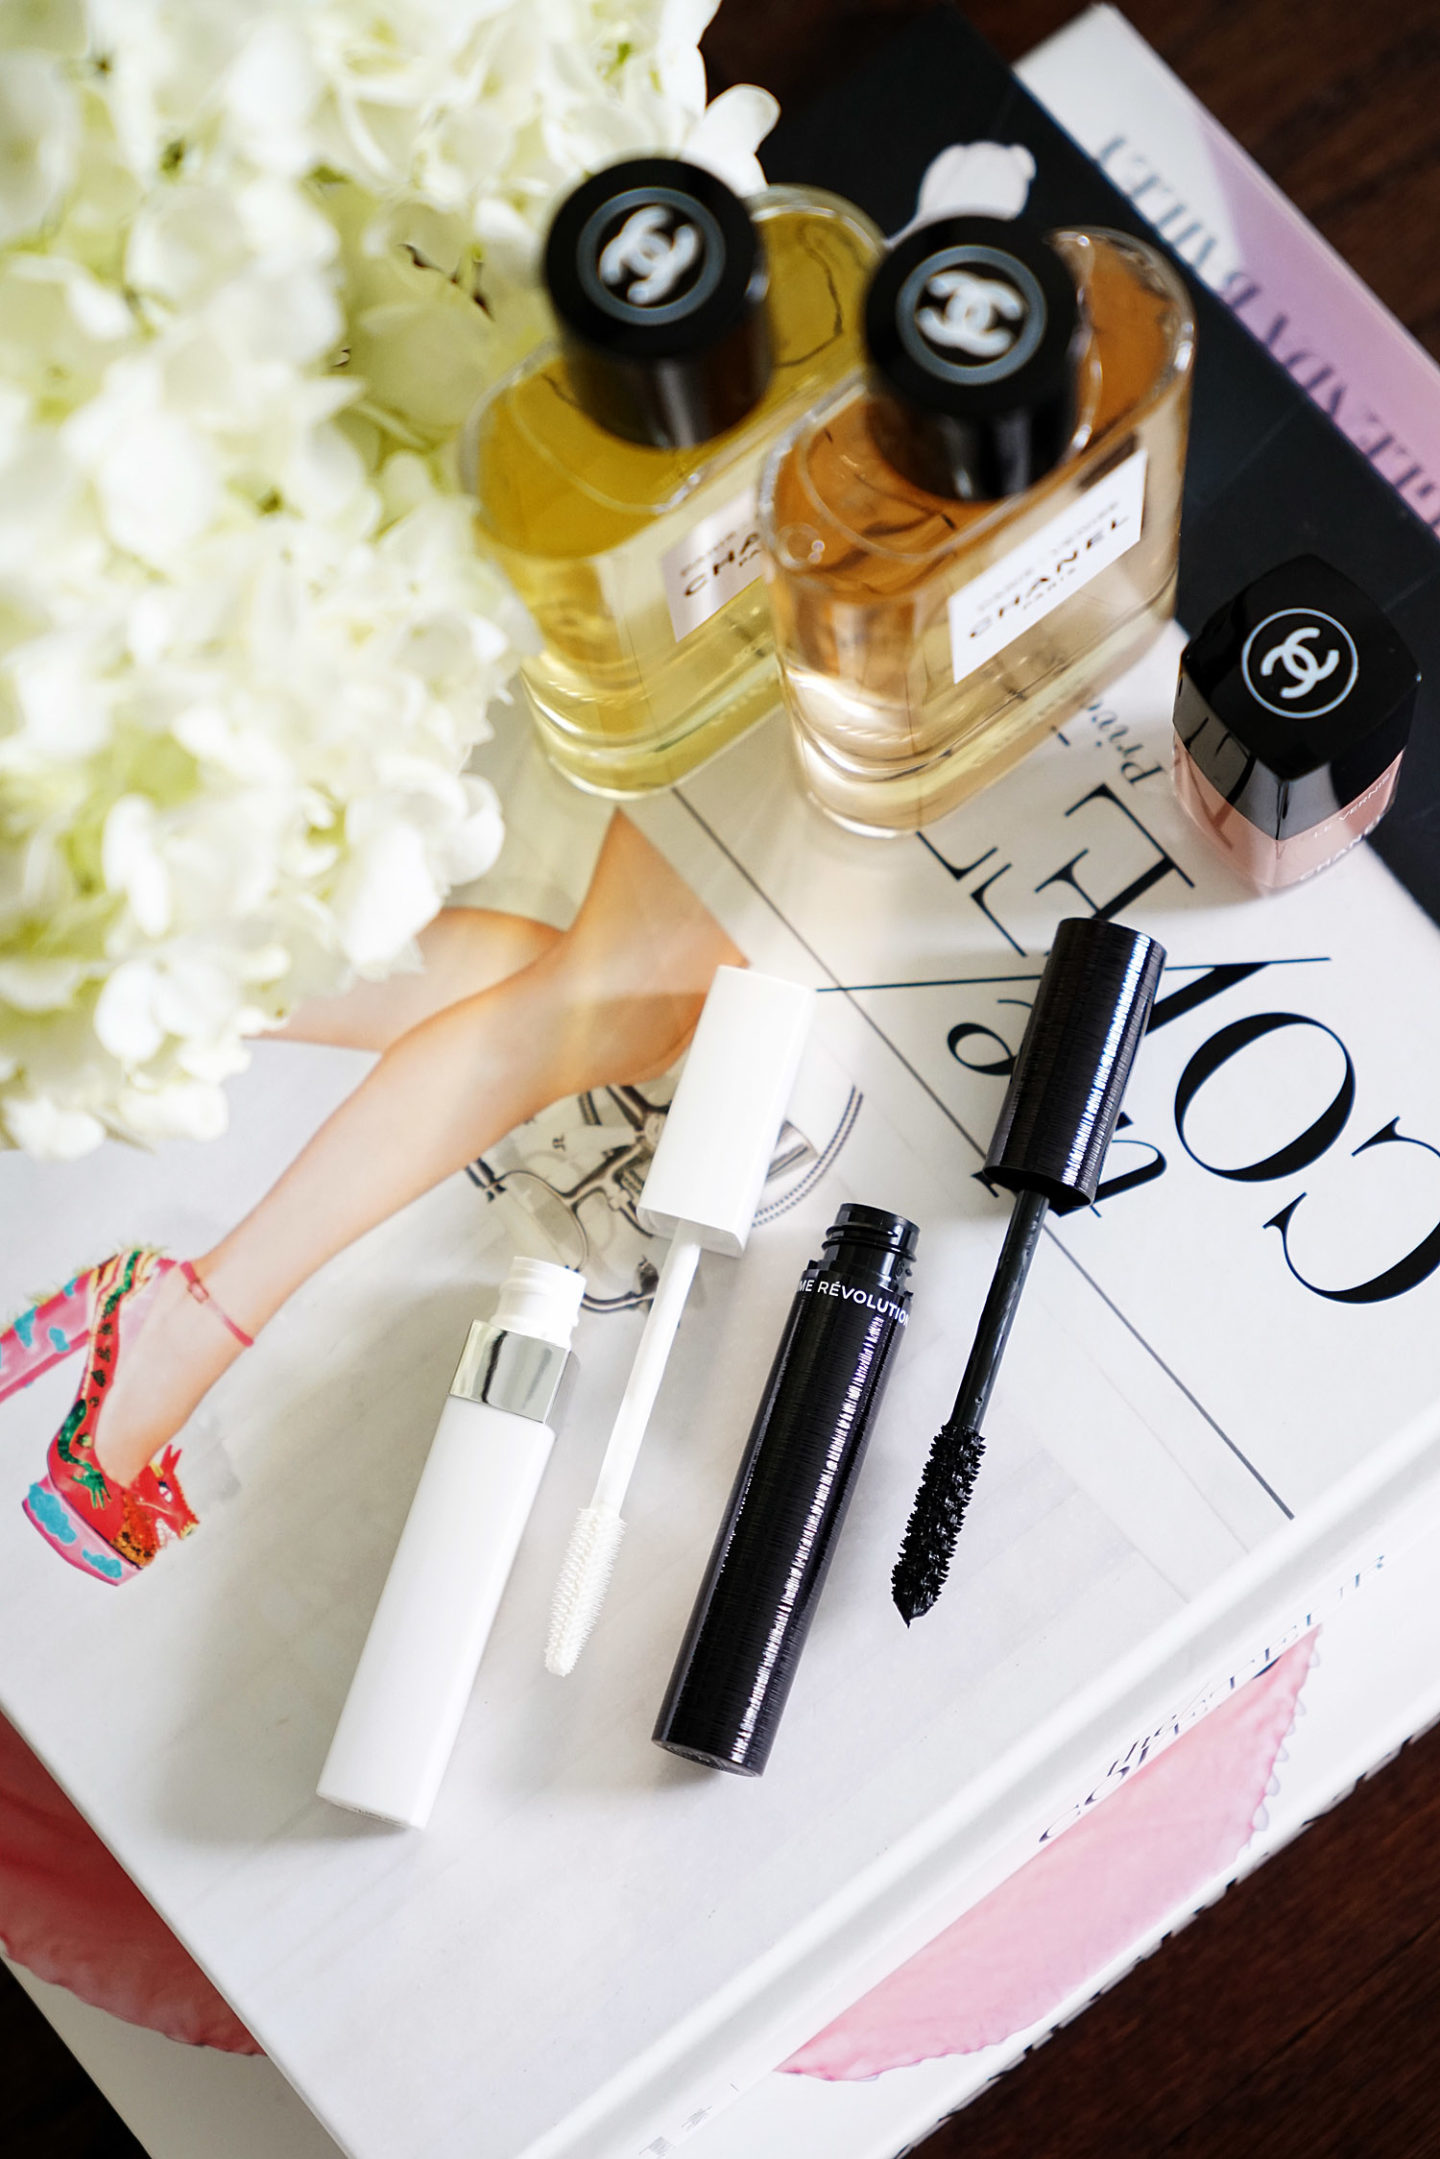 Mascara Chanel La Base + Le Volume Révolution de Chanel